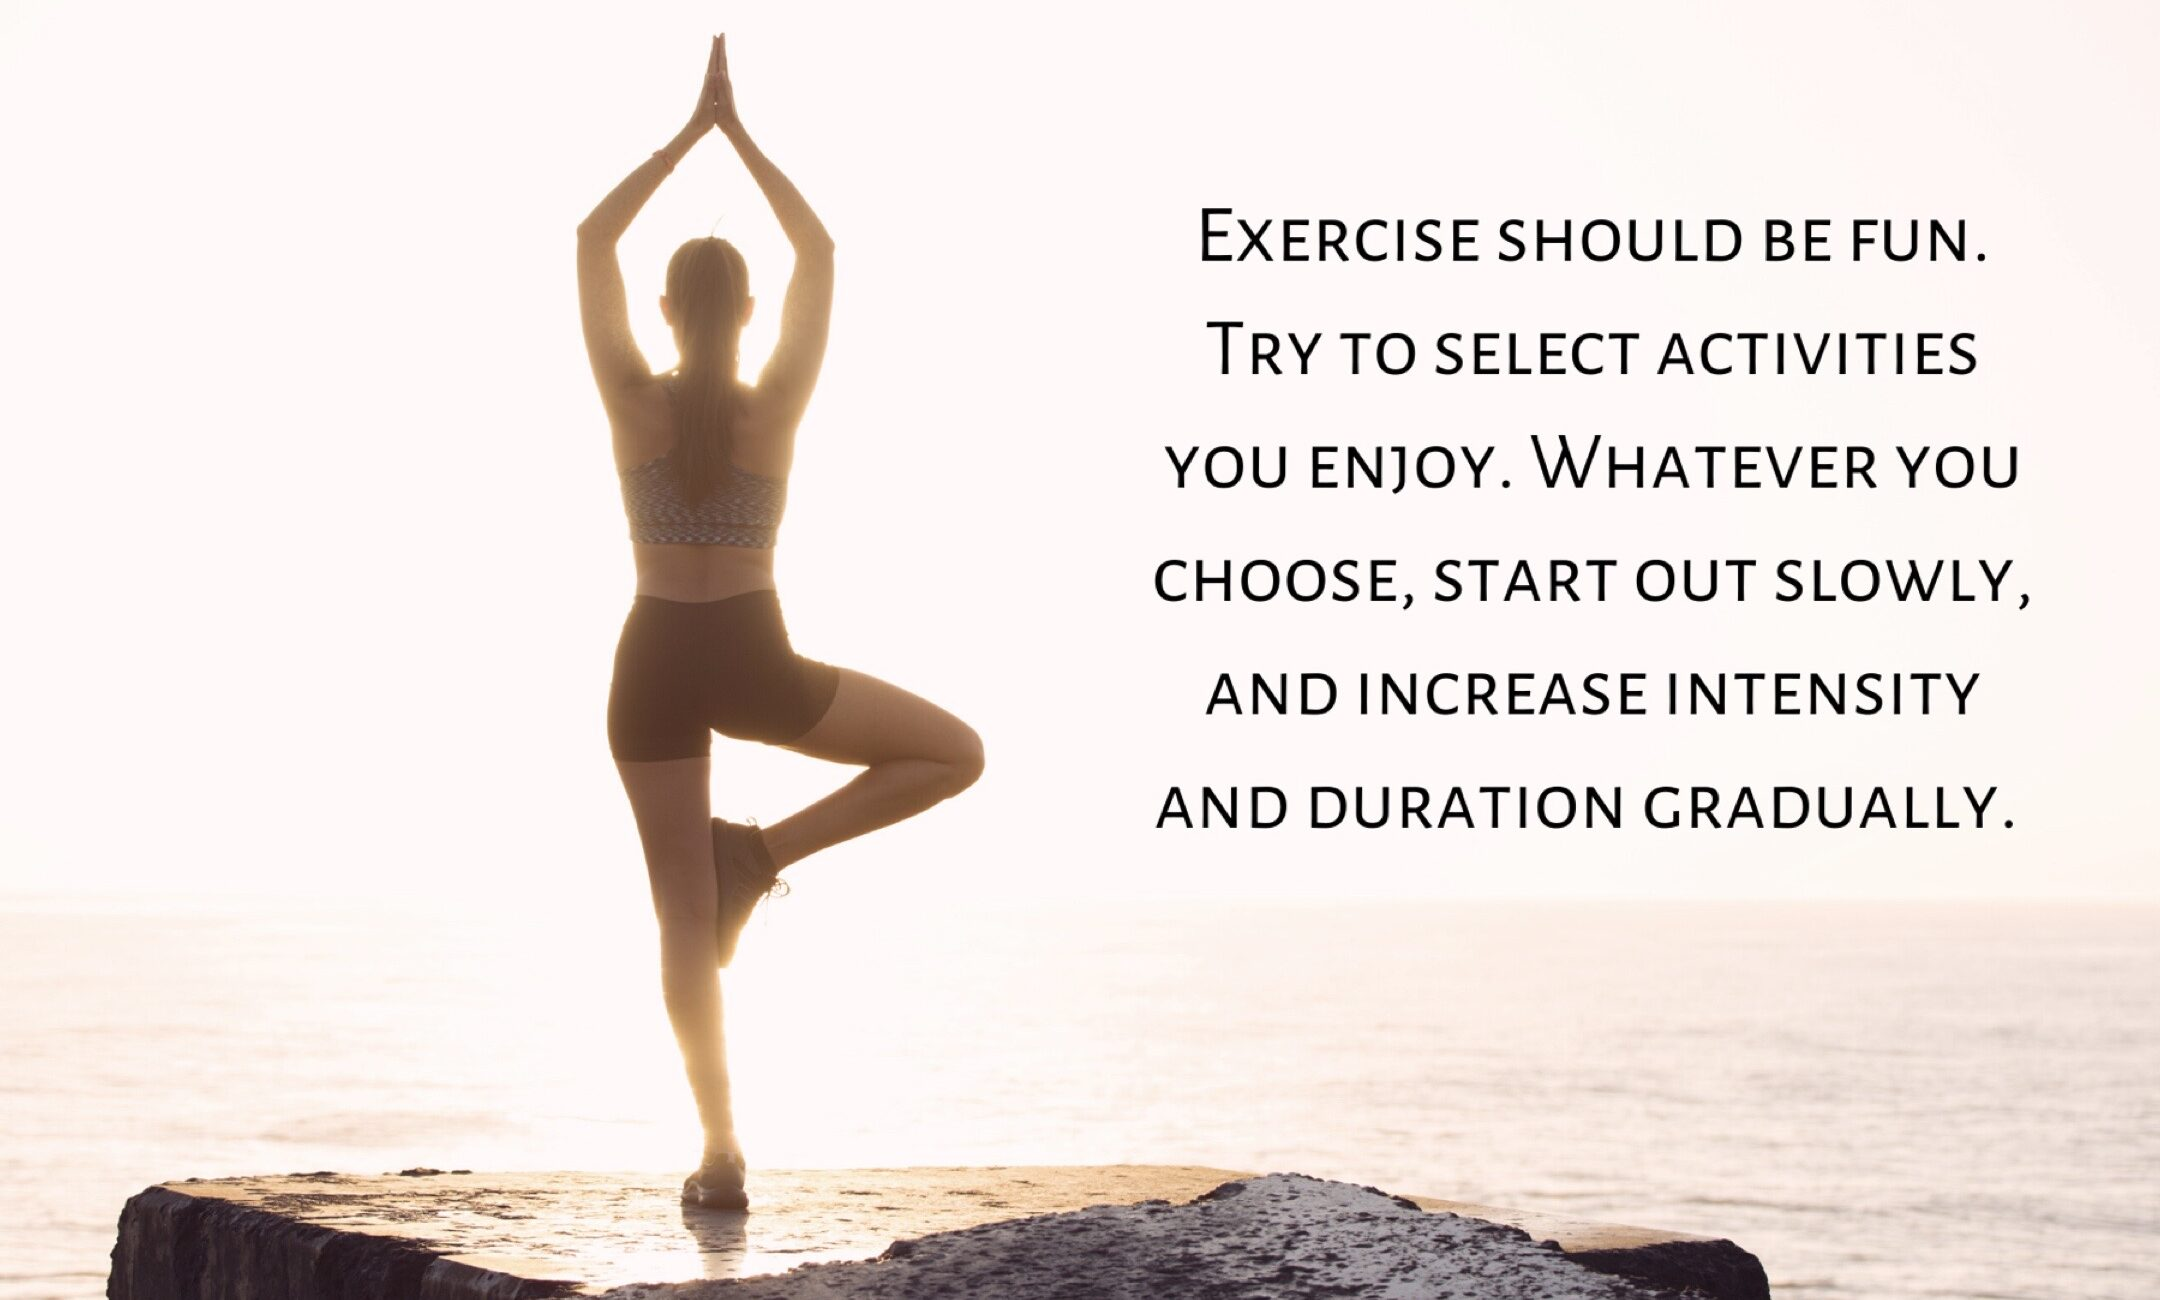 exercise-should-be-fun-select-activities-you-enjoy-whatever-you-choose-start-slow-increase-intensity-fitness-tips-with-good-looks-bible-glb-by-jehan-mir-small-image